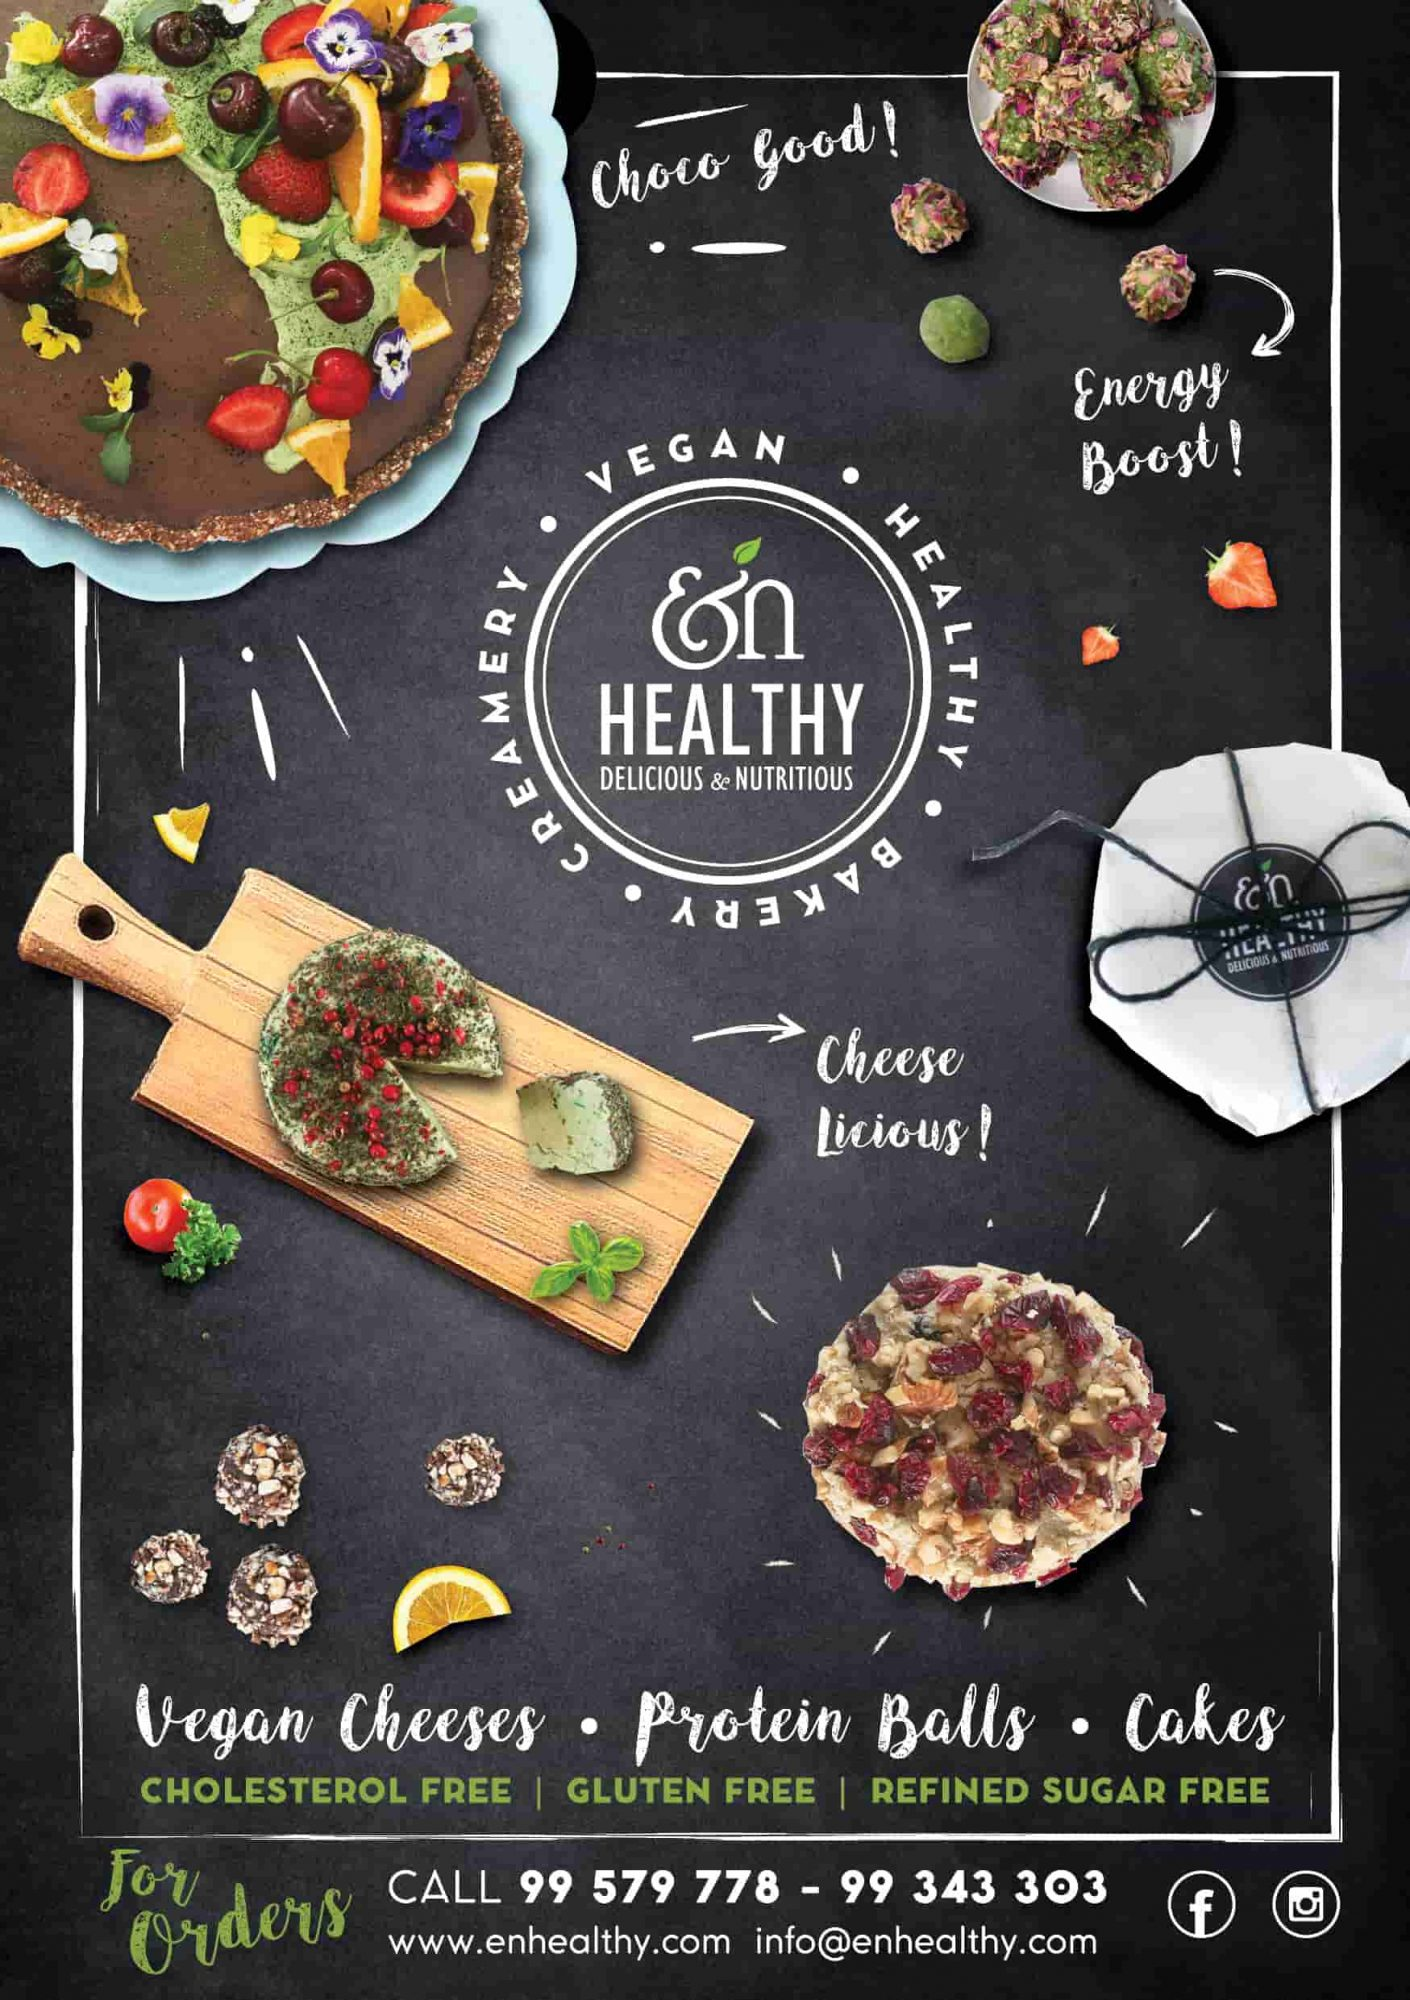 Vegan-Healthy-Bakery-Creamery